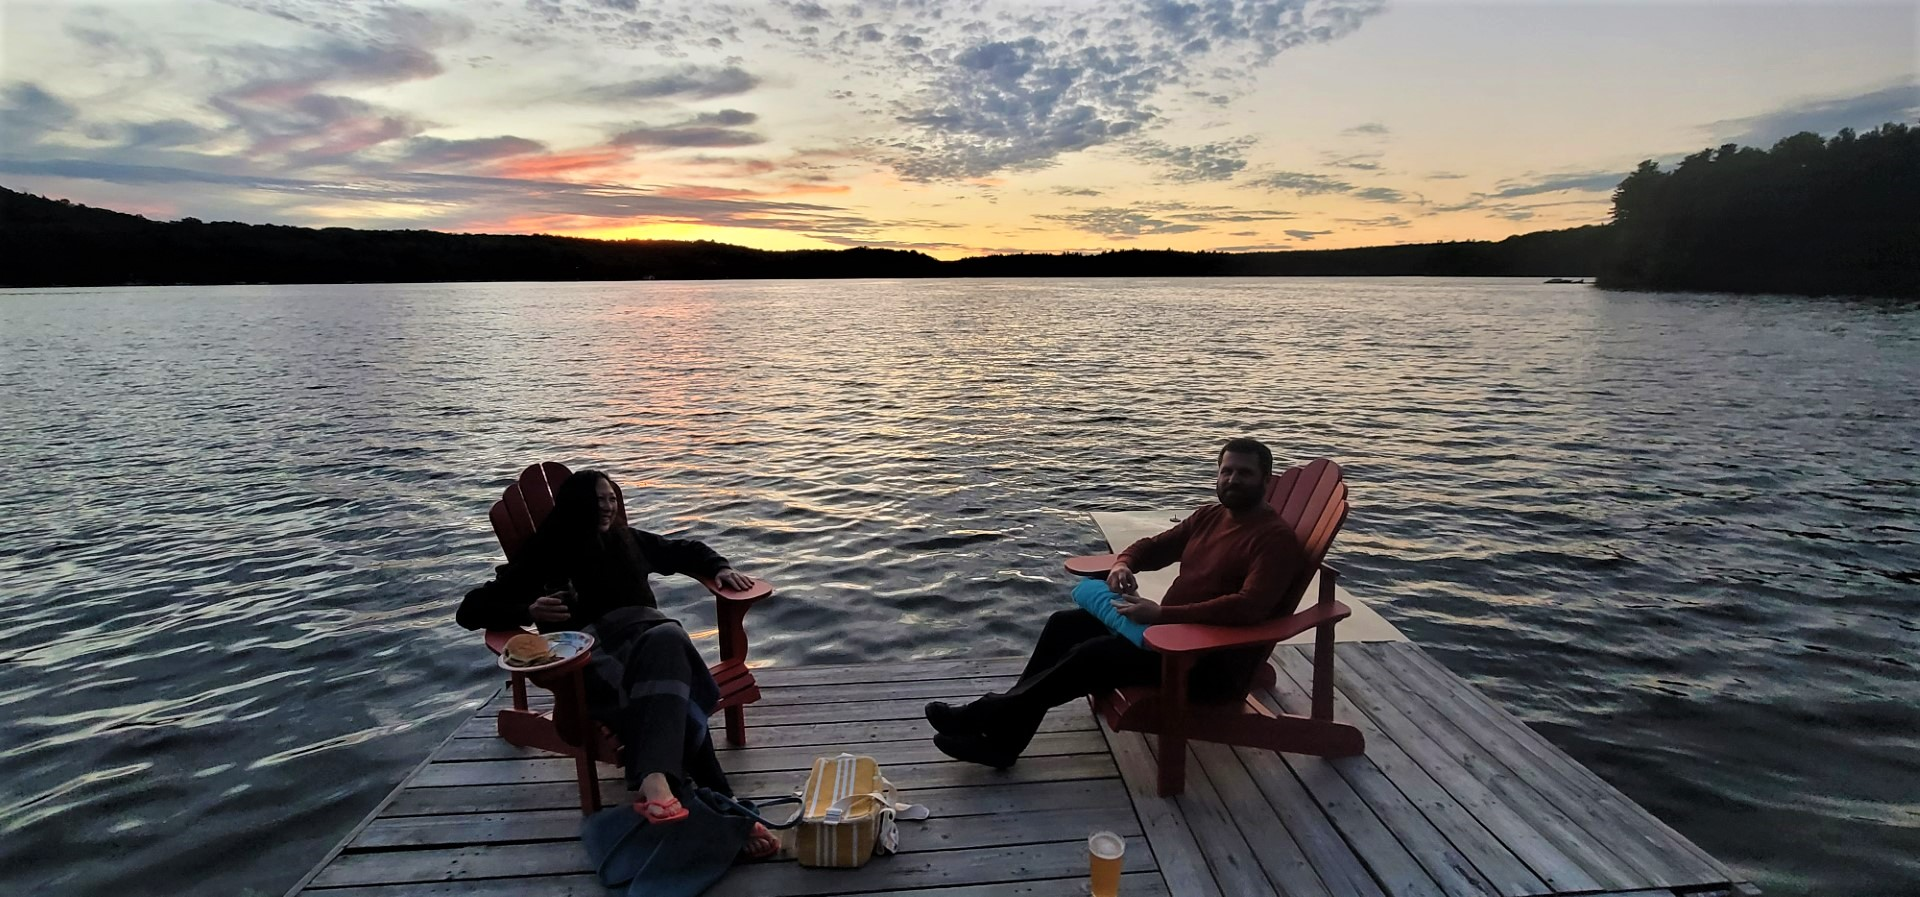 sunset with people enjoying drinks on a dock